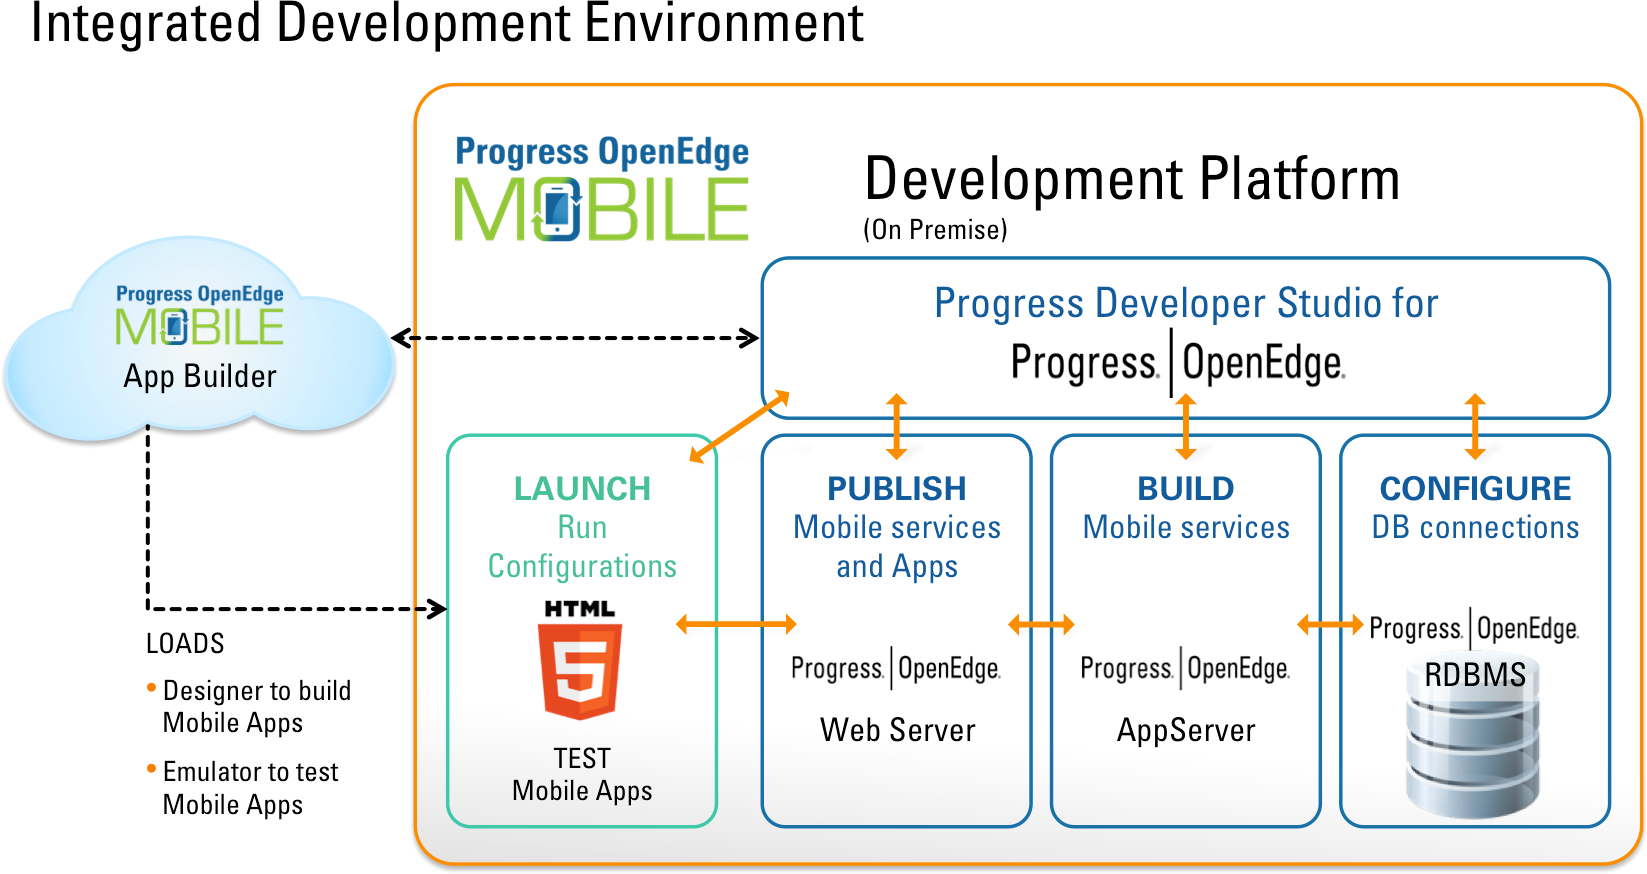 OpenEdge Mobile Integrated development environmen